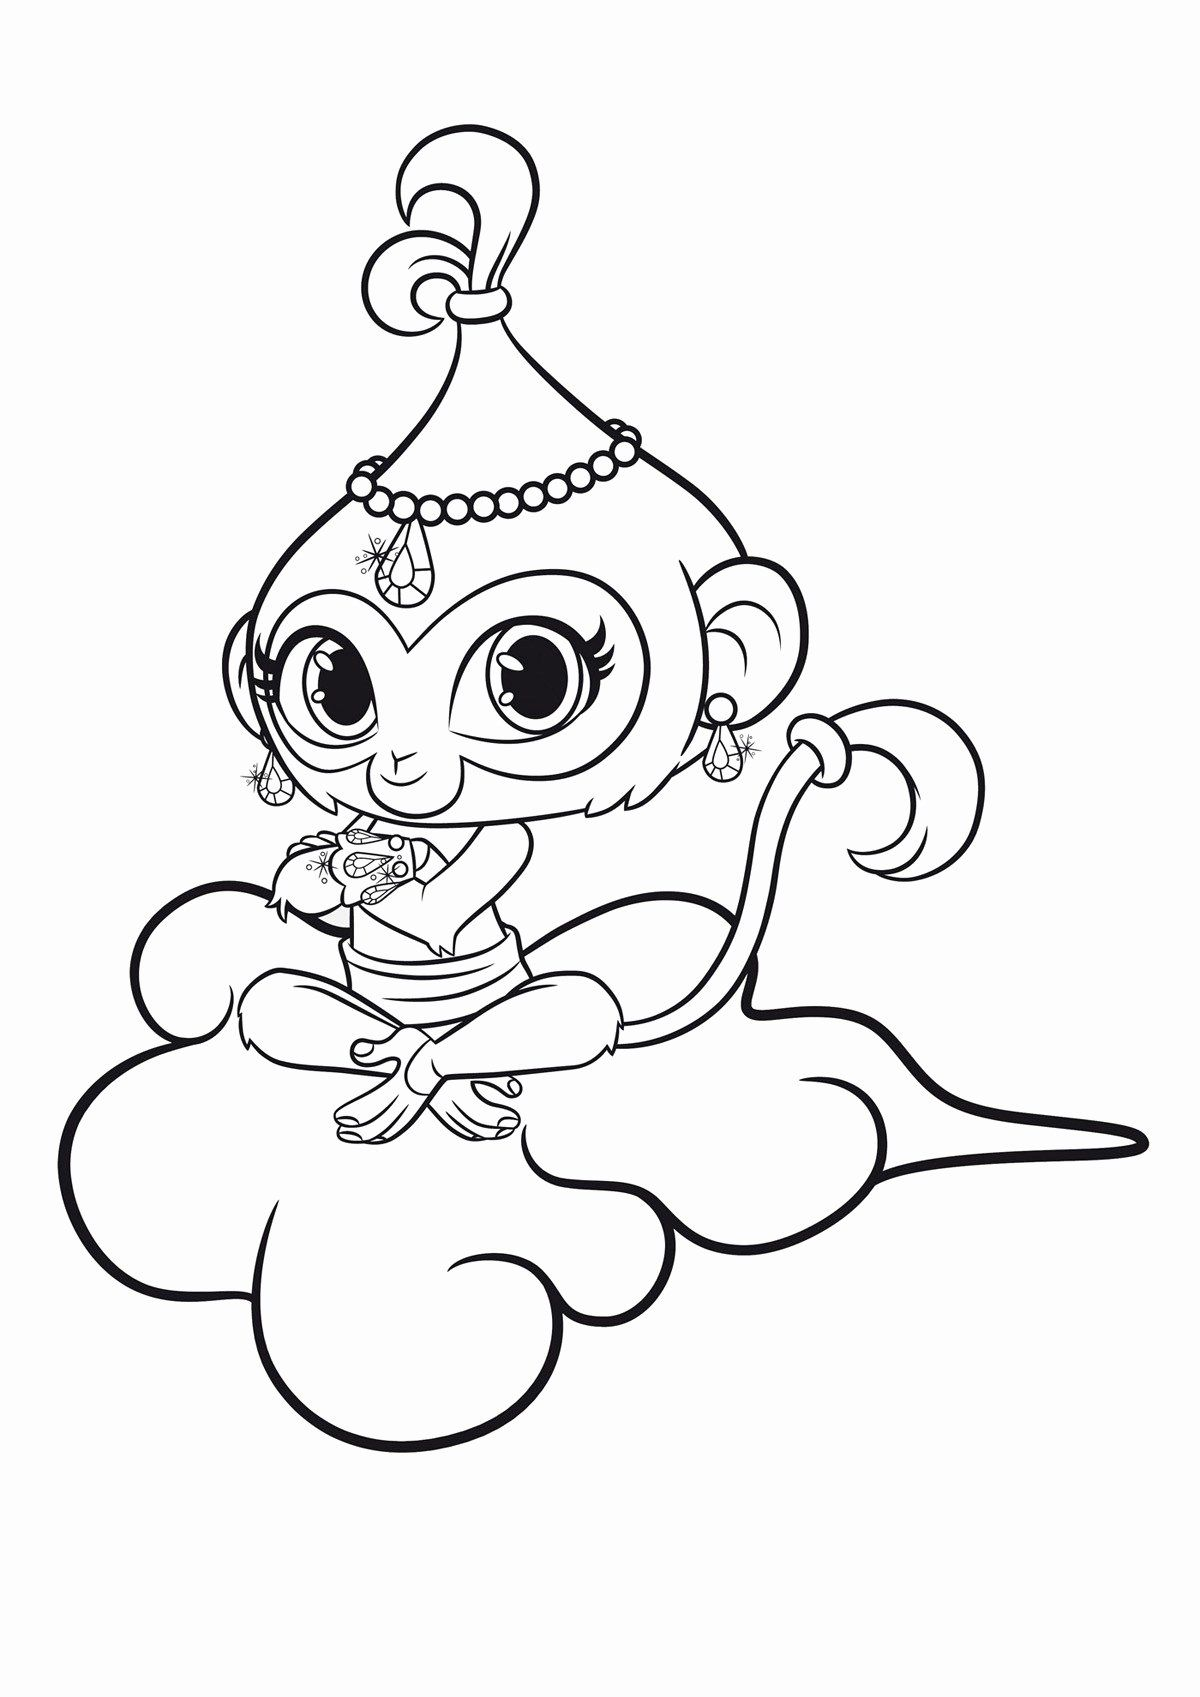 Shimmer And Shine Coloring Awesome Coloring Pages Coloring Shimmer And Shine Best Ages Leah Mermaid Coloring Pages Coloring Pages Free Coloring Pages